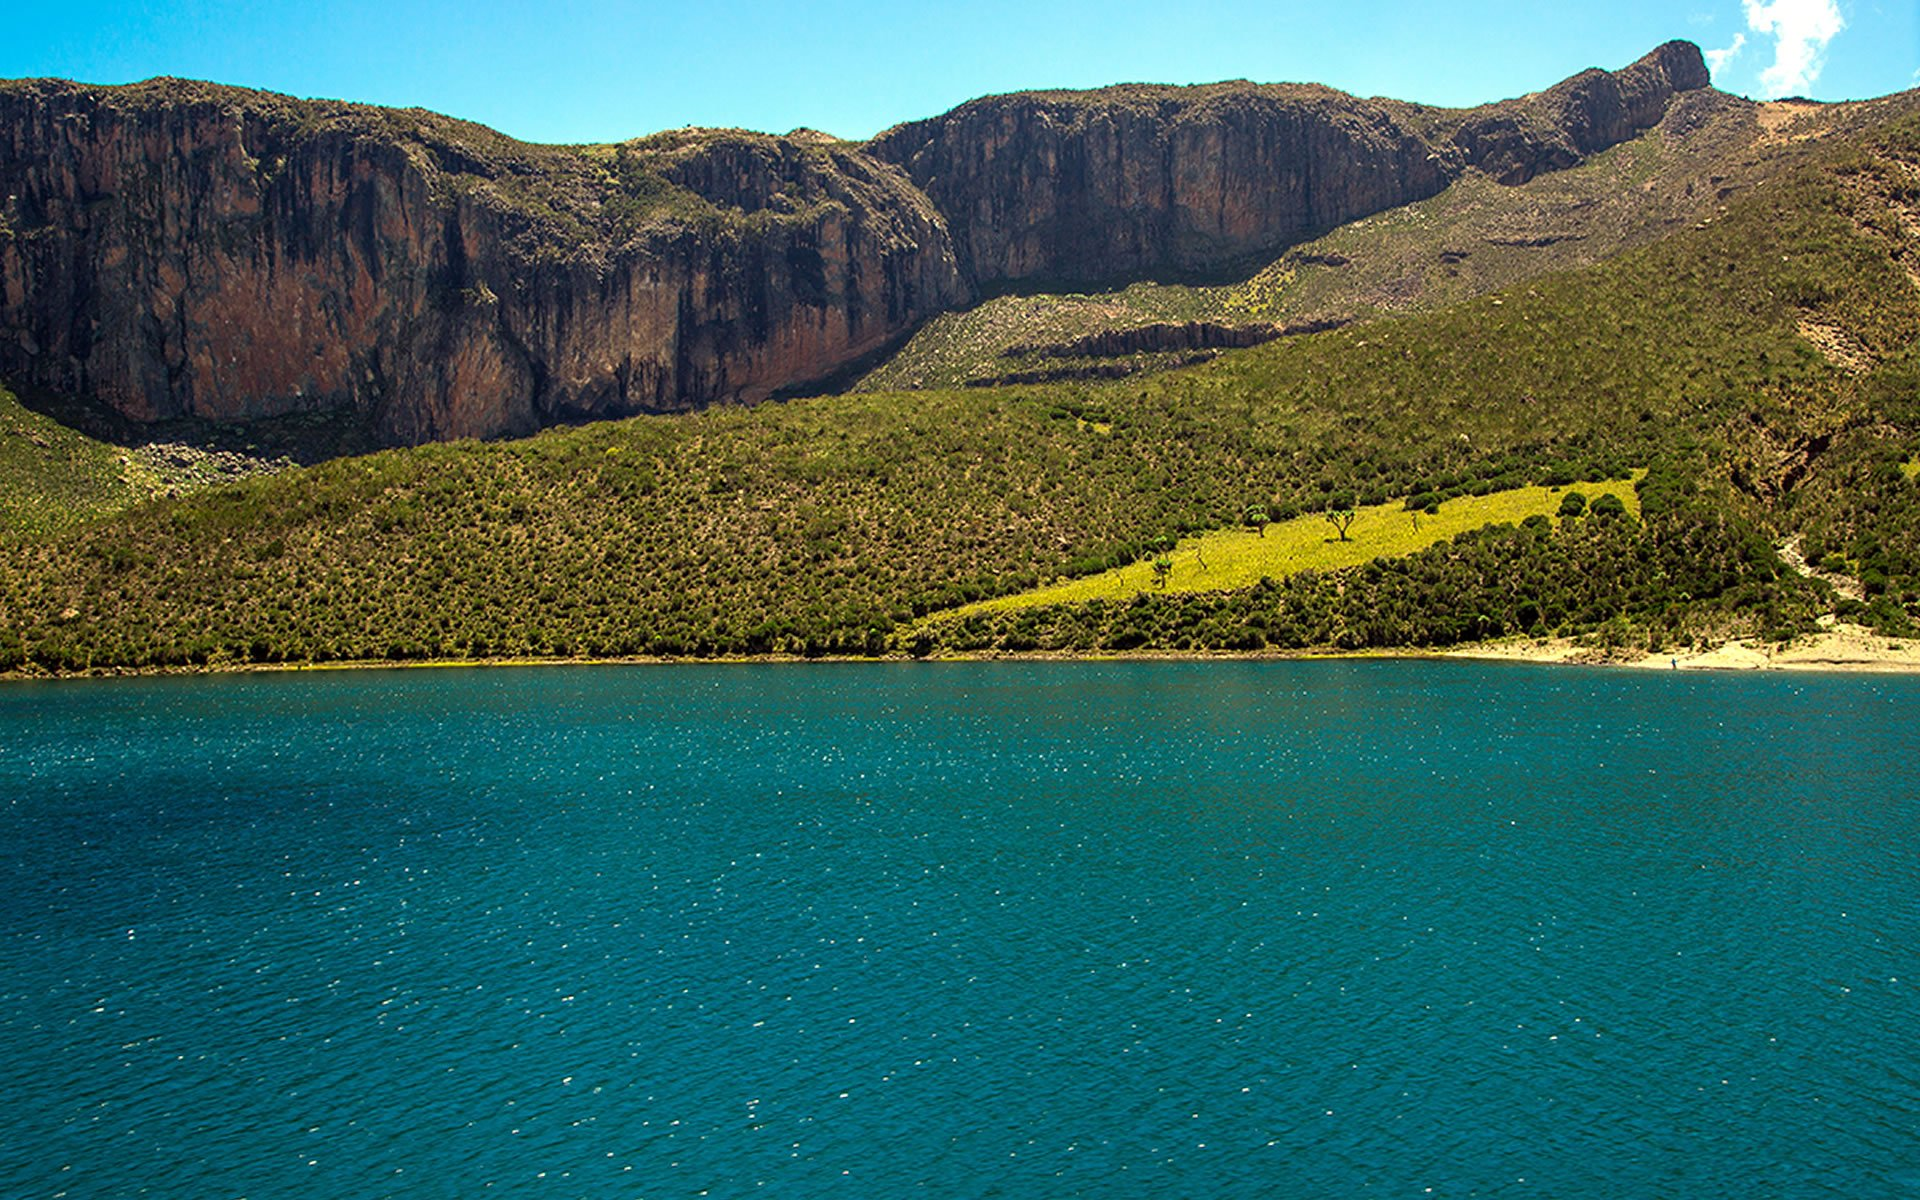 Lake Alice is the largest of Mount Kenya's great lakes. The others are Lake Michaelson, Lake Ellis and Lake Rutundu.